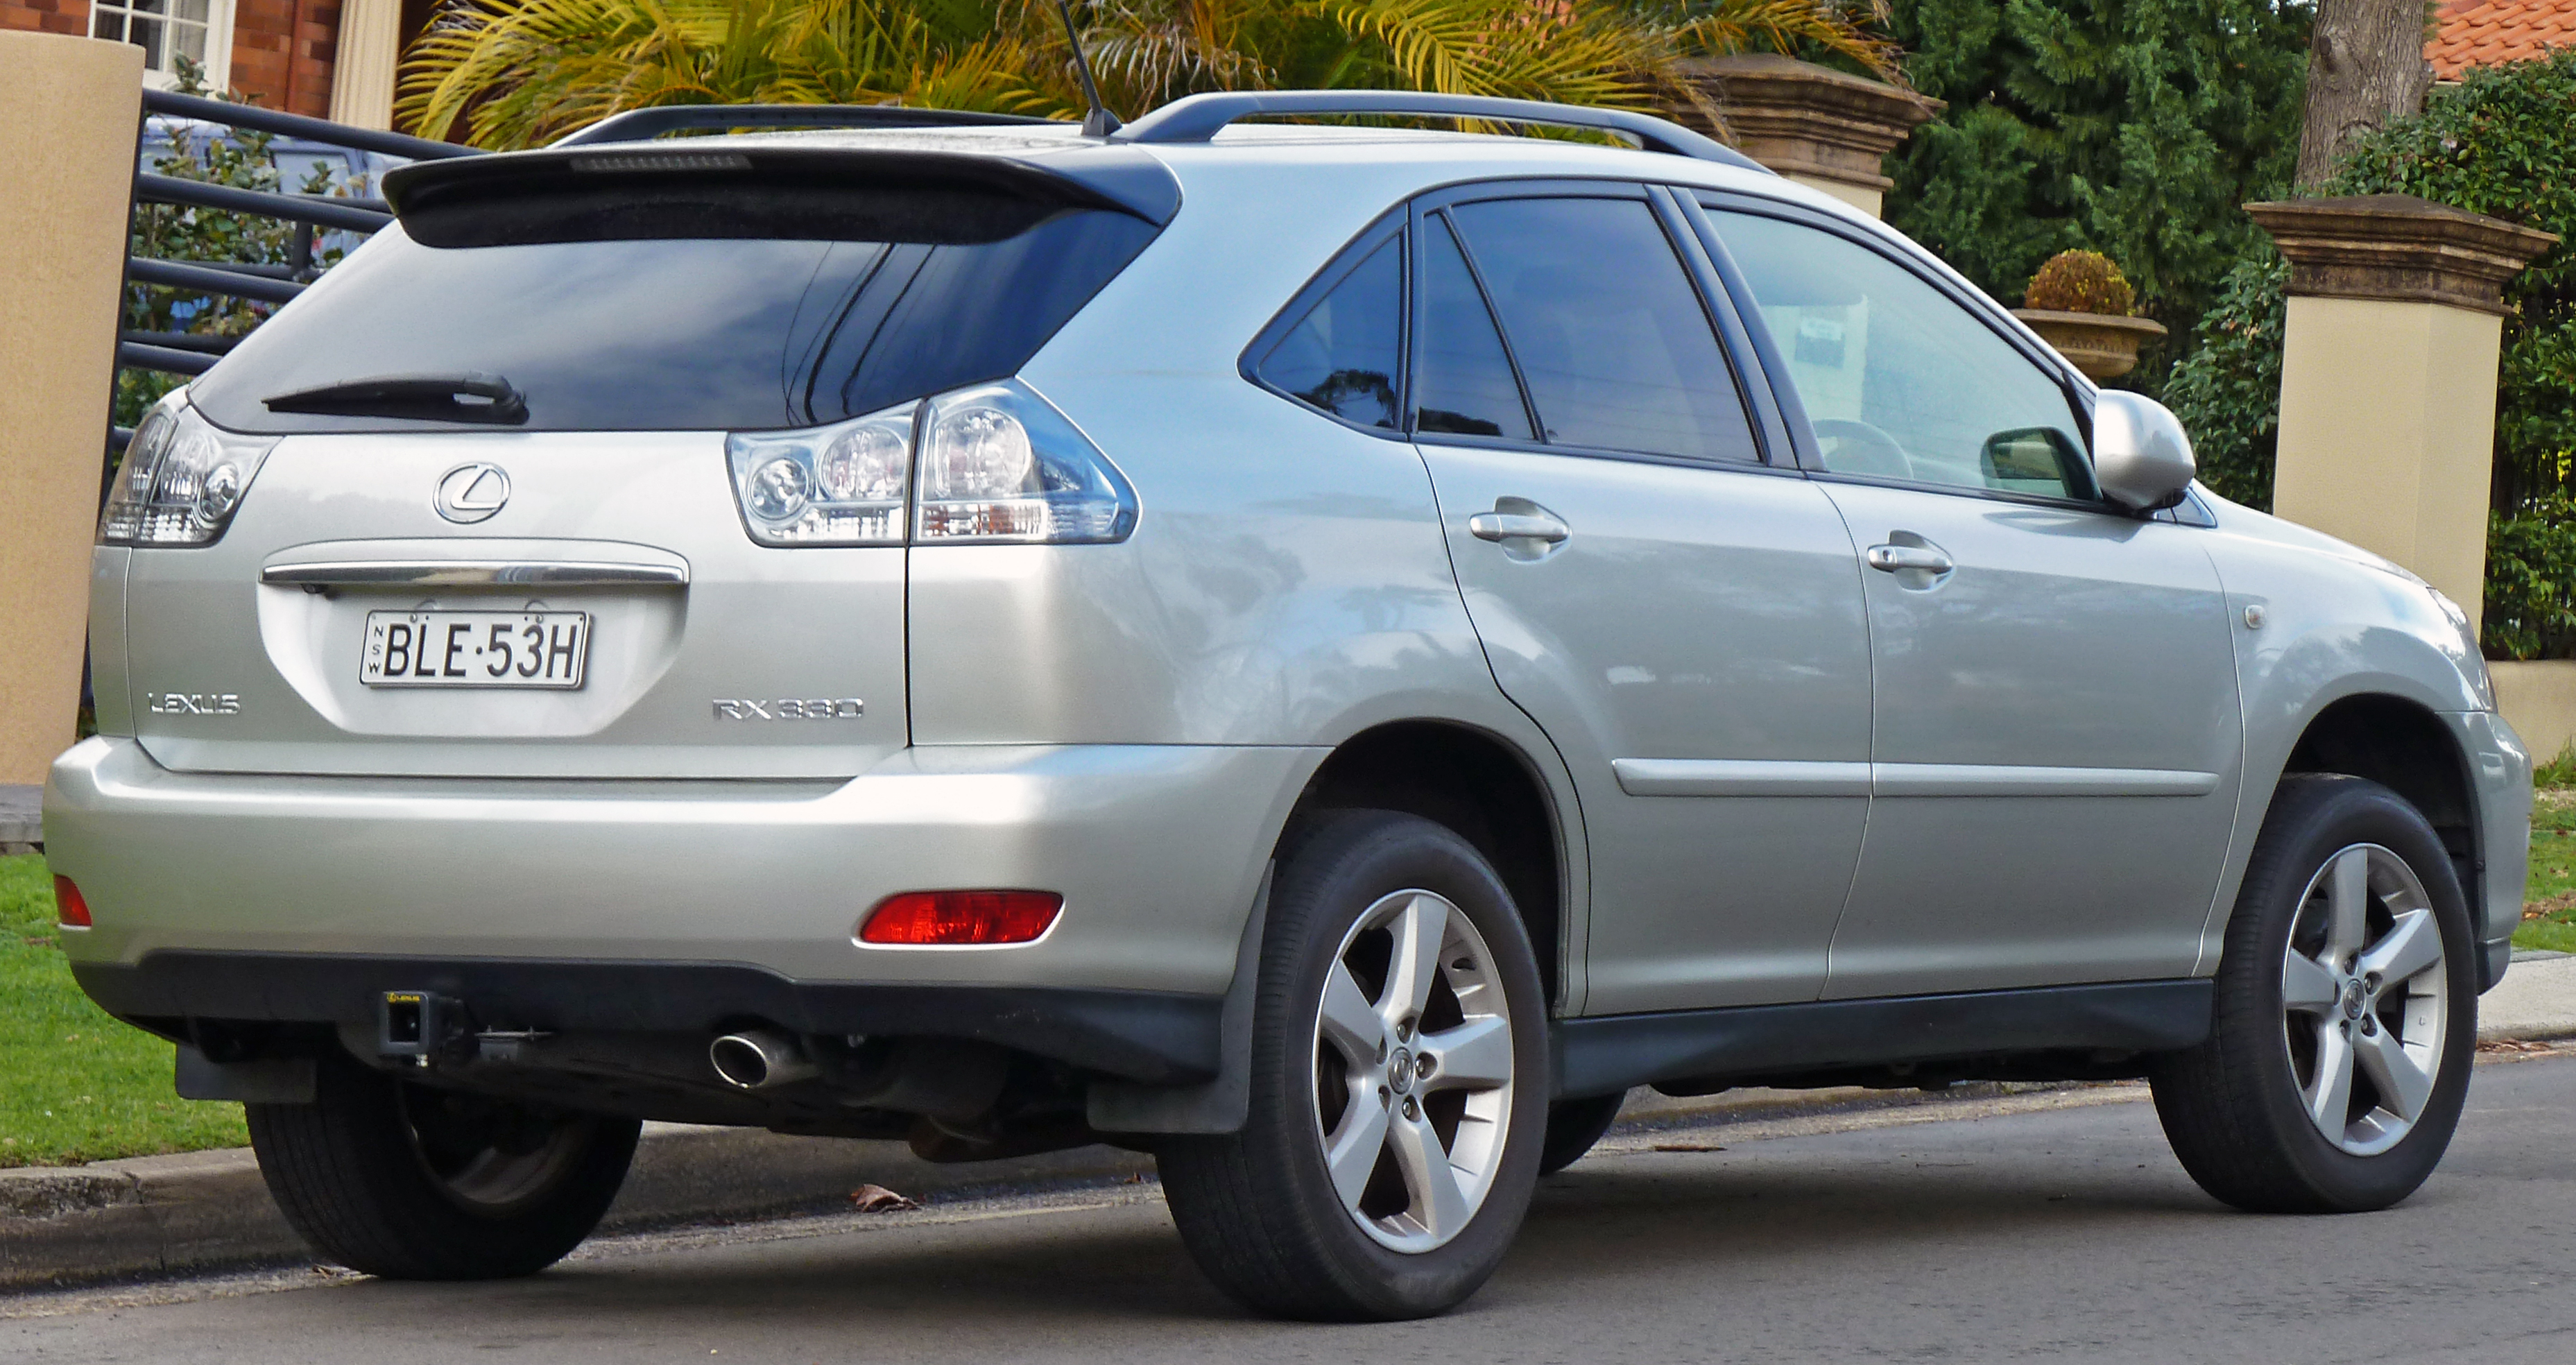 2005 Lexus Rx 330 Photos, Informations, Articles - BestCarMag.com